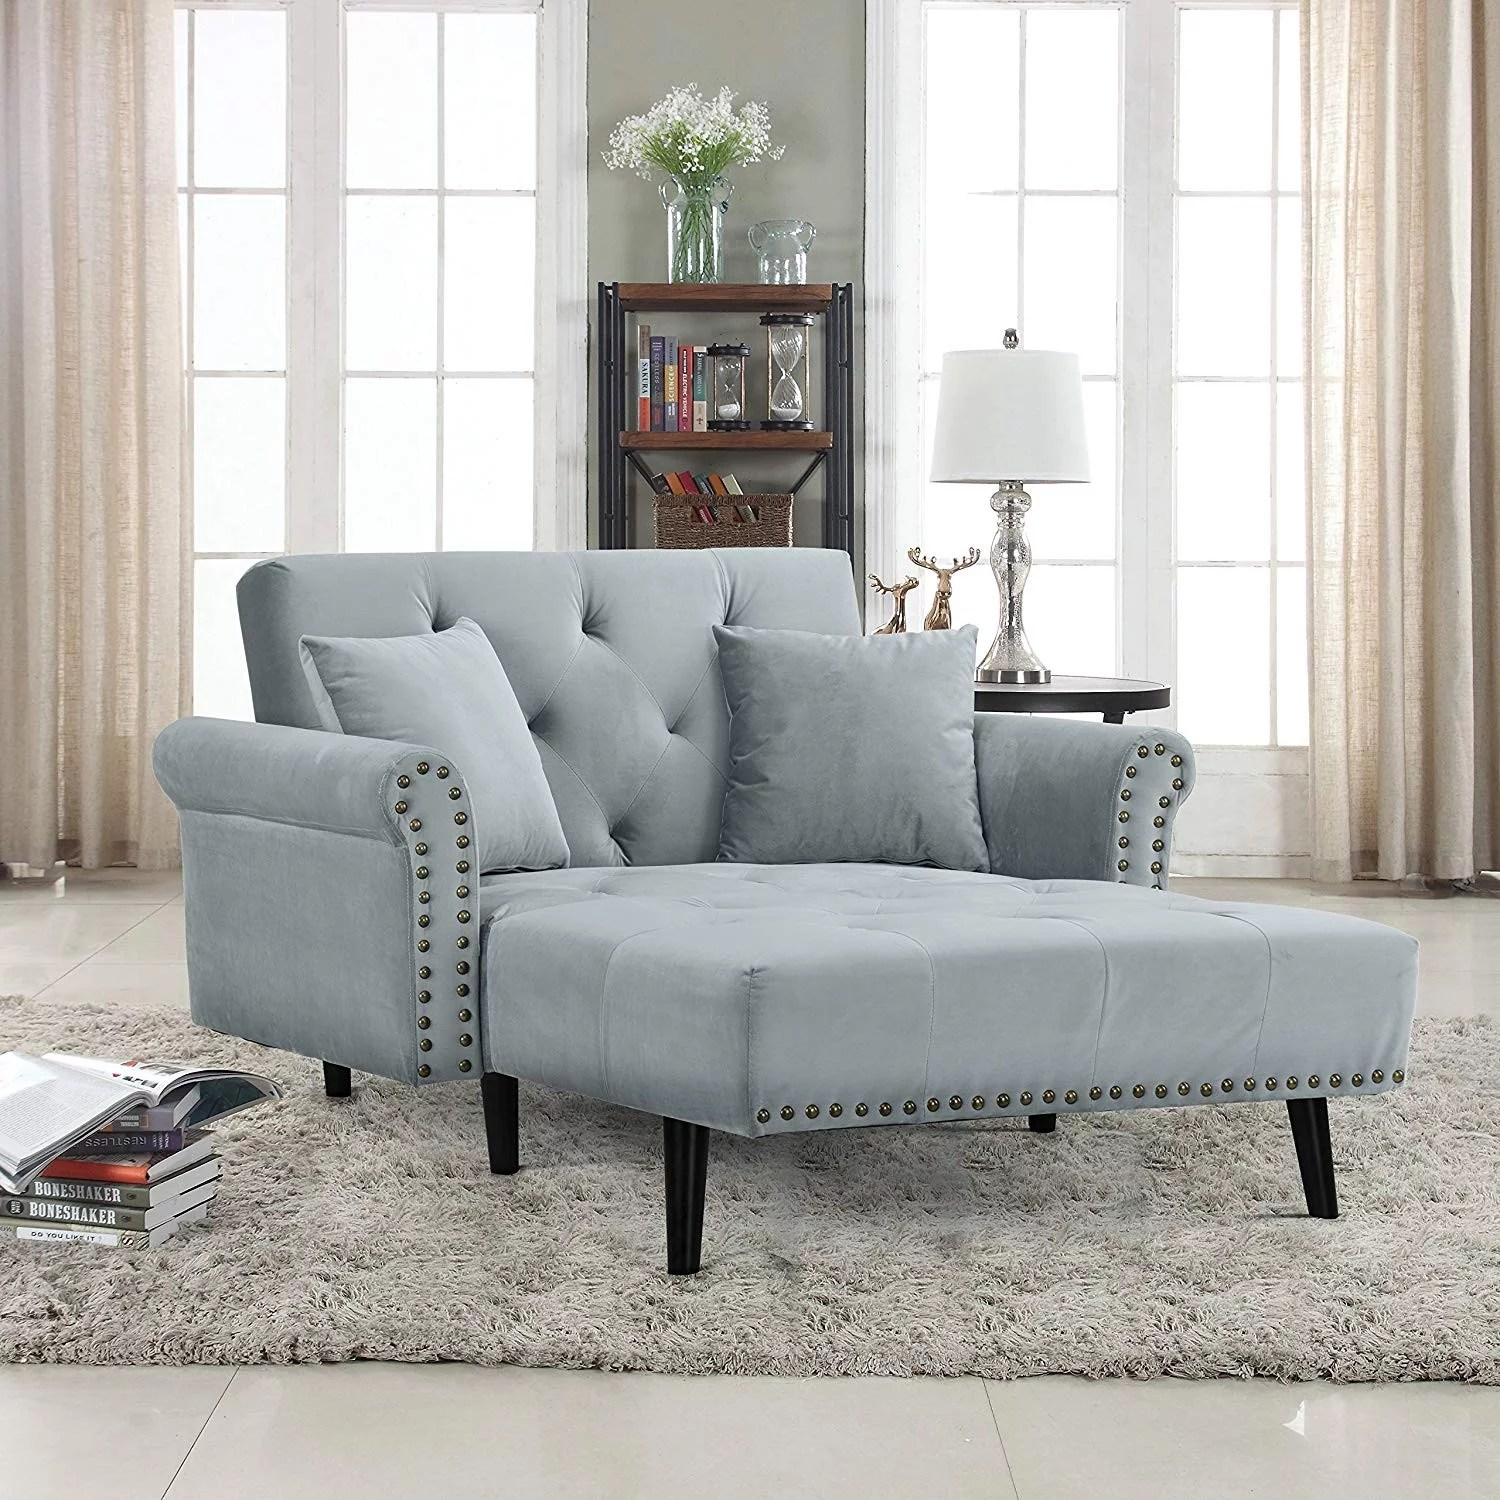 Amazon Sofa Bed Grey Affordable Furniture From Amazon Popsugar Home